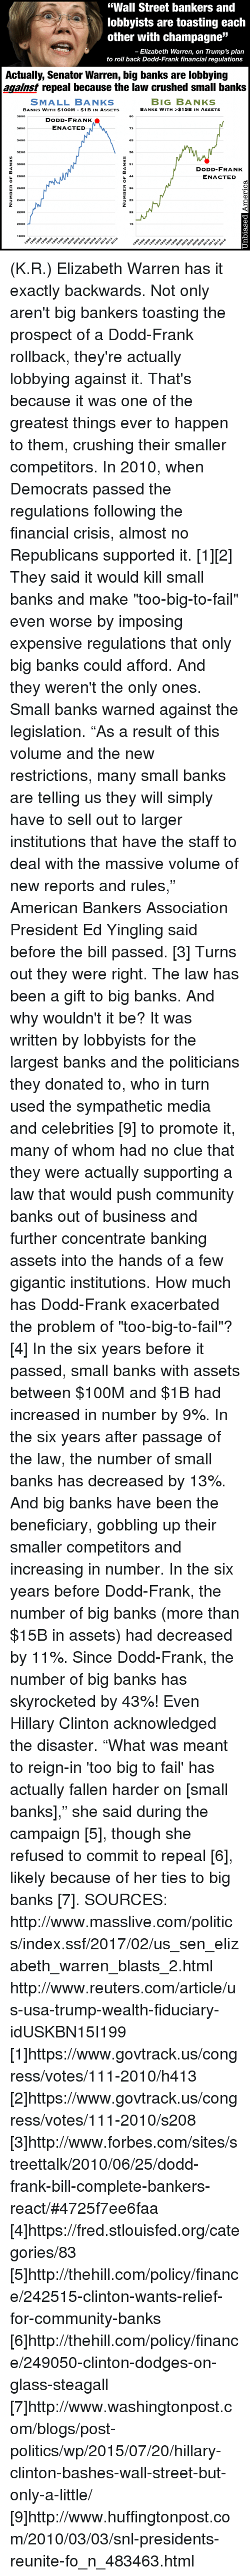 """gigantism: """"Wall Street bankers and  lobbyists are toasting each  other with champagne  JJ  Elizabeth Warren, on Trump's plan  to roll back Dodd-Frank financial regulations  Actually, Senator Warren, big banks are lobbying  against repeal because the law crushed small banks  BIG BANKS  SMALL BANKS  BANKS WITH $15B IN ASSETS  BANKs WITH $100M $1B IN AssETs  3800  DODD-FRANK  ENACTED  N  3600  3400  6S  3200  3000  51  DODD-FRANK  ENACTED  2800  2600  D 2400  29  2200  15  1800 (K.R.) Elizabeth Warren has it exactly backwards.  Not only aren't big bankers toasting the prospect of a Dodd-Frank rollback, they're actually lobbying against it.  That's because it was one of the greatest things ever to happen to them, crushing their smaller competitors.  In 2010, when Democrats passed the regulations following the financial crisis, almost no Republicans supported it. [1][2] They said it would kill small banks and make """"too-big-to-fail"""" even worse by imposing expensive regulations that only big banks could afford.   And they weren't the only ones. Small banks warned against the legislation. """"As a result of this volume and the new restrictions, many small banks are telling us they will simply have to sell out to larger institutions that have the staff to deal with the massive volume of new reports and rules,"""" American Bankers Association President Ed Yingling said before the bill passed. [3]  Turns out they were right. The law has been a gift to big banks. And why wouldn't it be? It was written by lobbyists for the largest banks and the politicians they donated to, who in turn used the sympathetic media and celebrities [9] to promote it, many of whom had no clue that they were actually supporting a law that would push community banks out of business and further concentrate banking assets into the hands of a few gigantic institutions.  How much has Dodd-Frank exacerbated the problem of """"too-big-to-fail""""? [4] In the six years before it passed, small banks with assets between $1"""